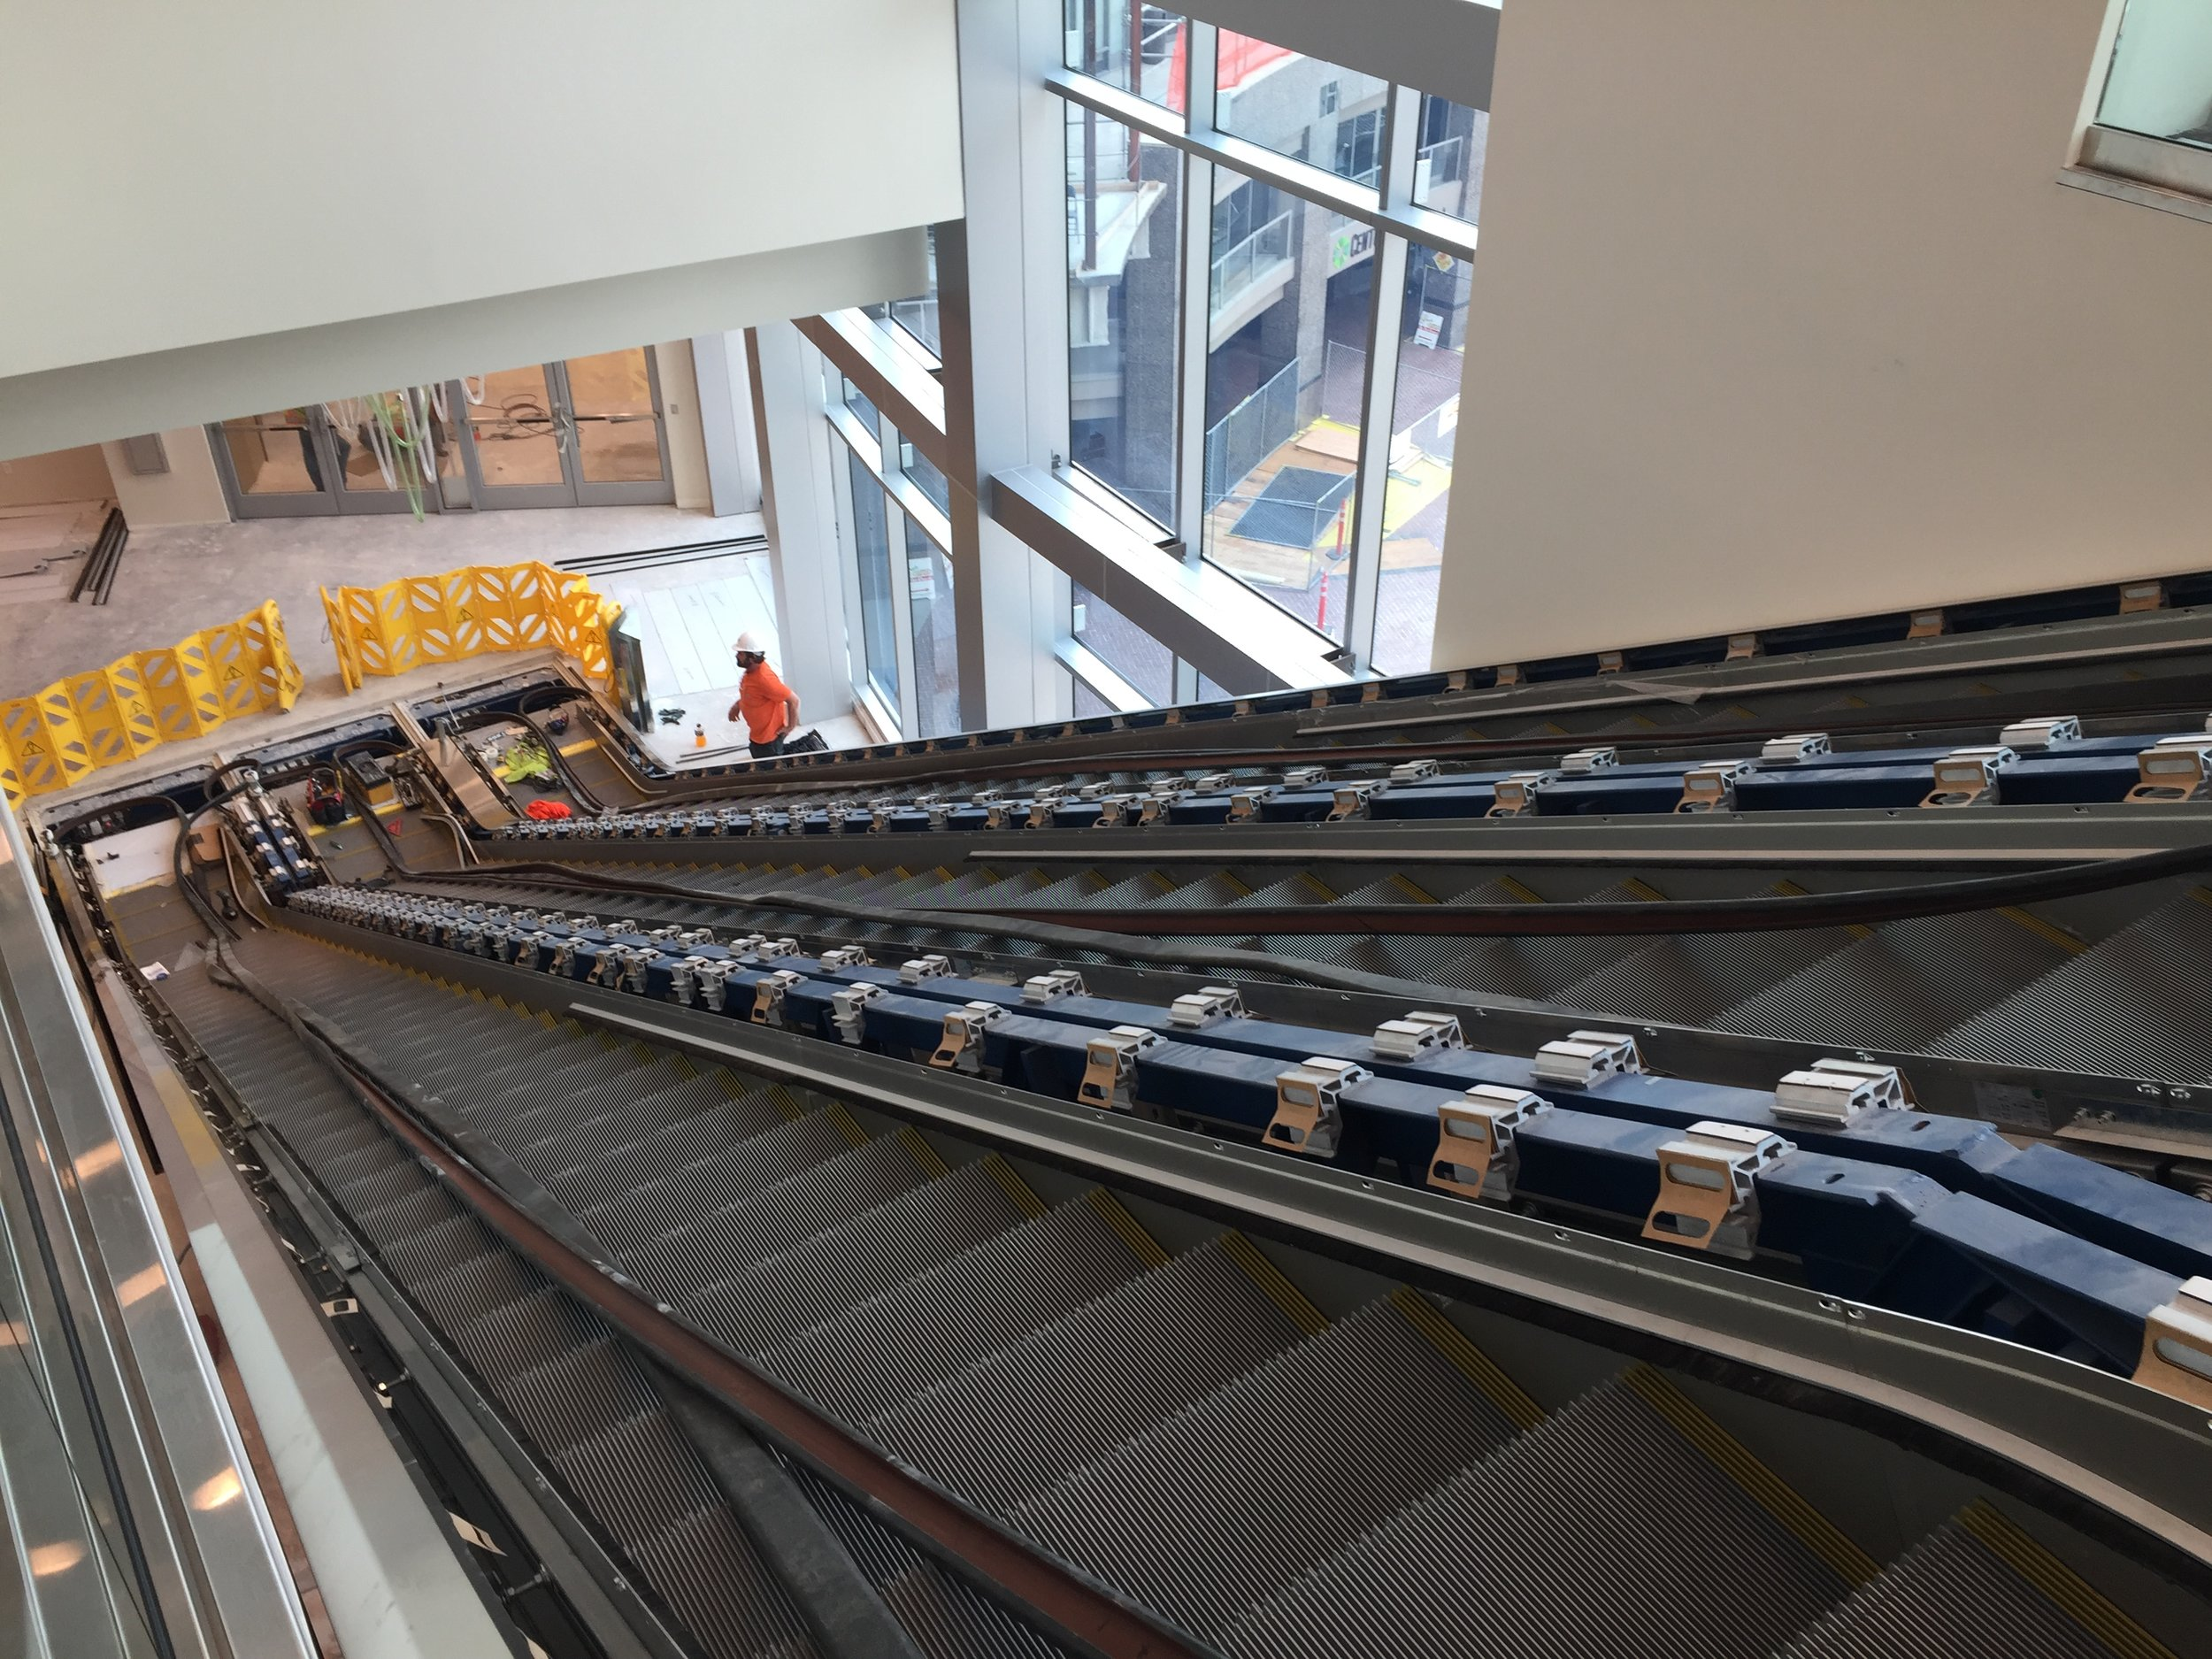 Escalators provide access to the 2nd floor, where a future skybridge will connect to the existing Boise Centre facility on the west side of the Grove. A kitchen space is on the 3rd floor